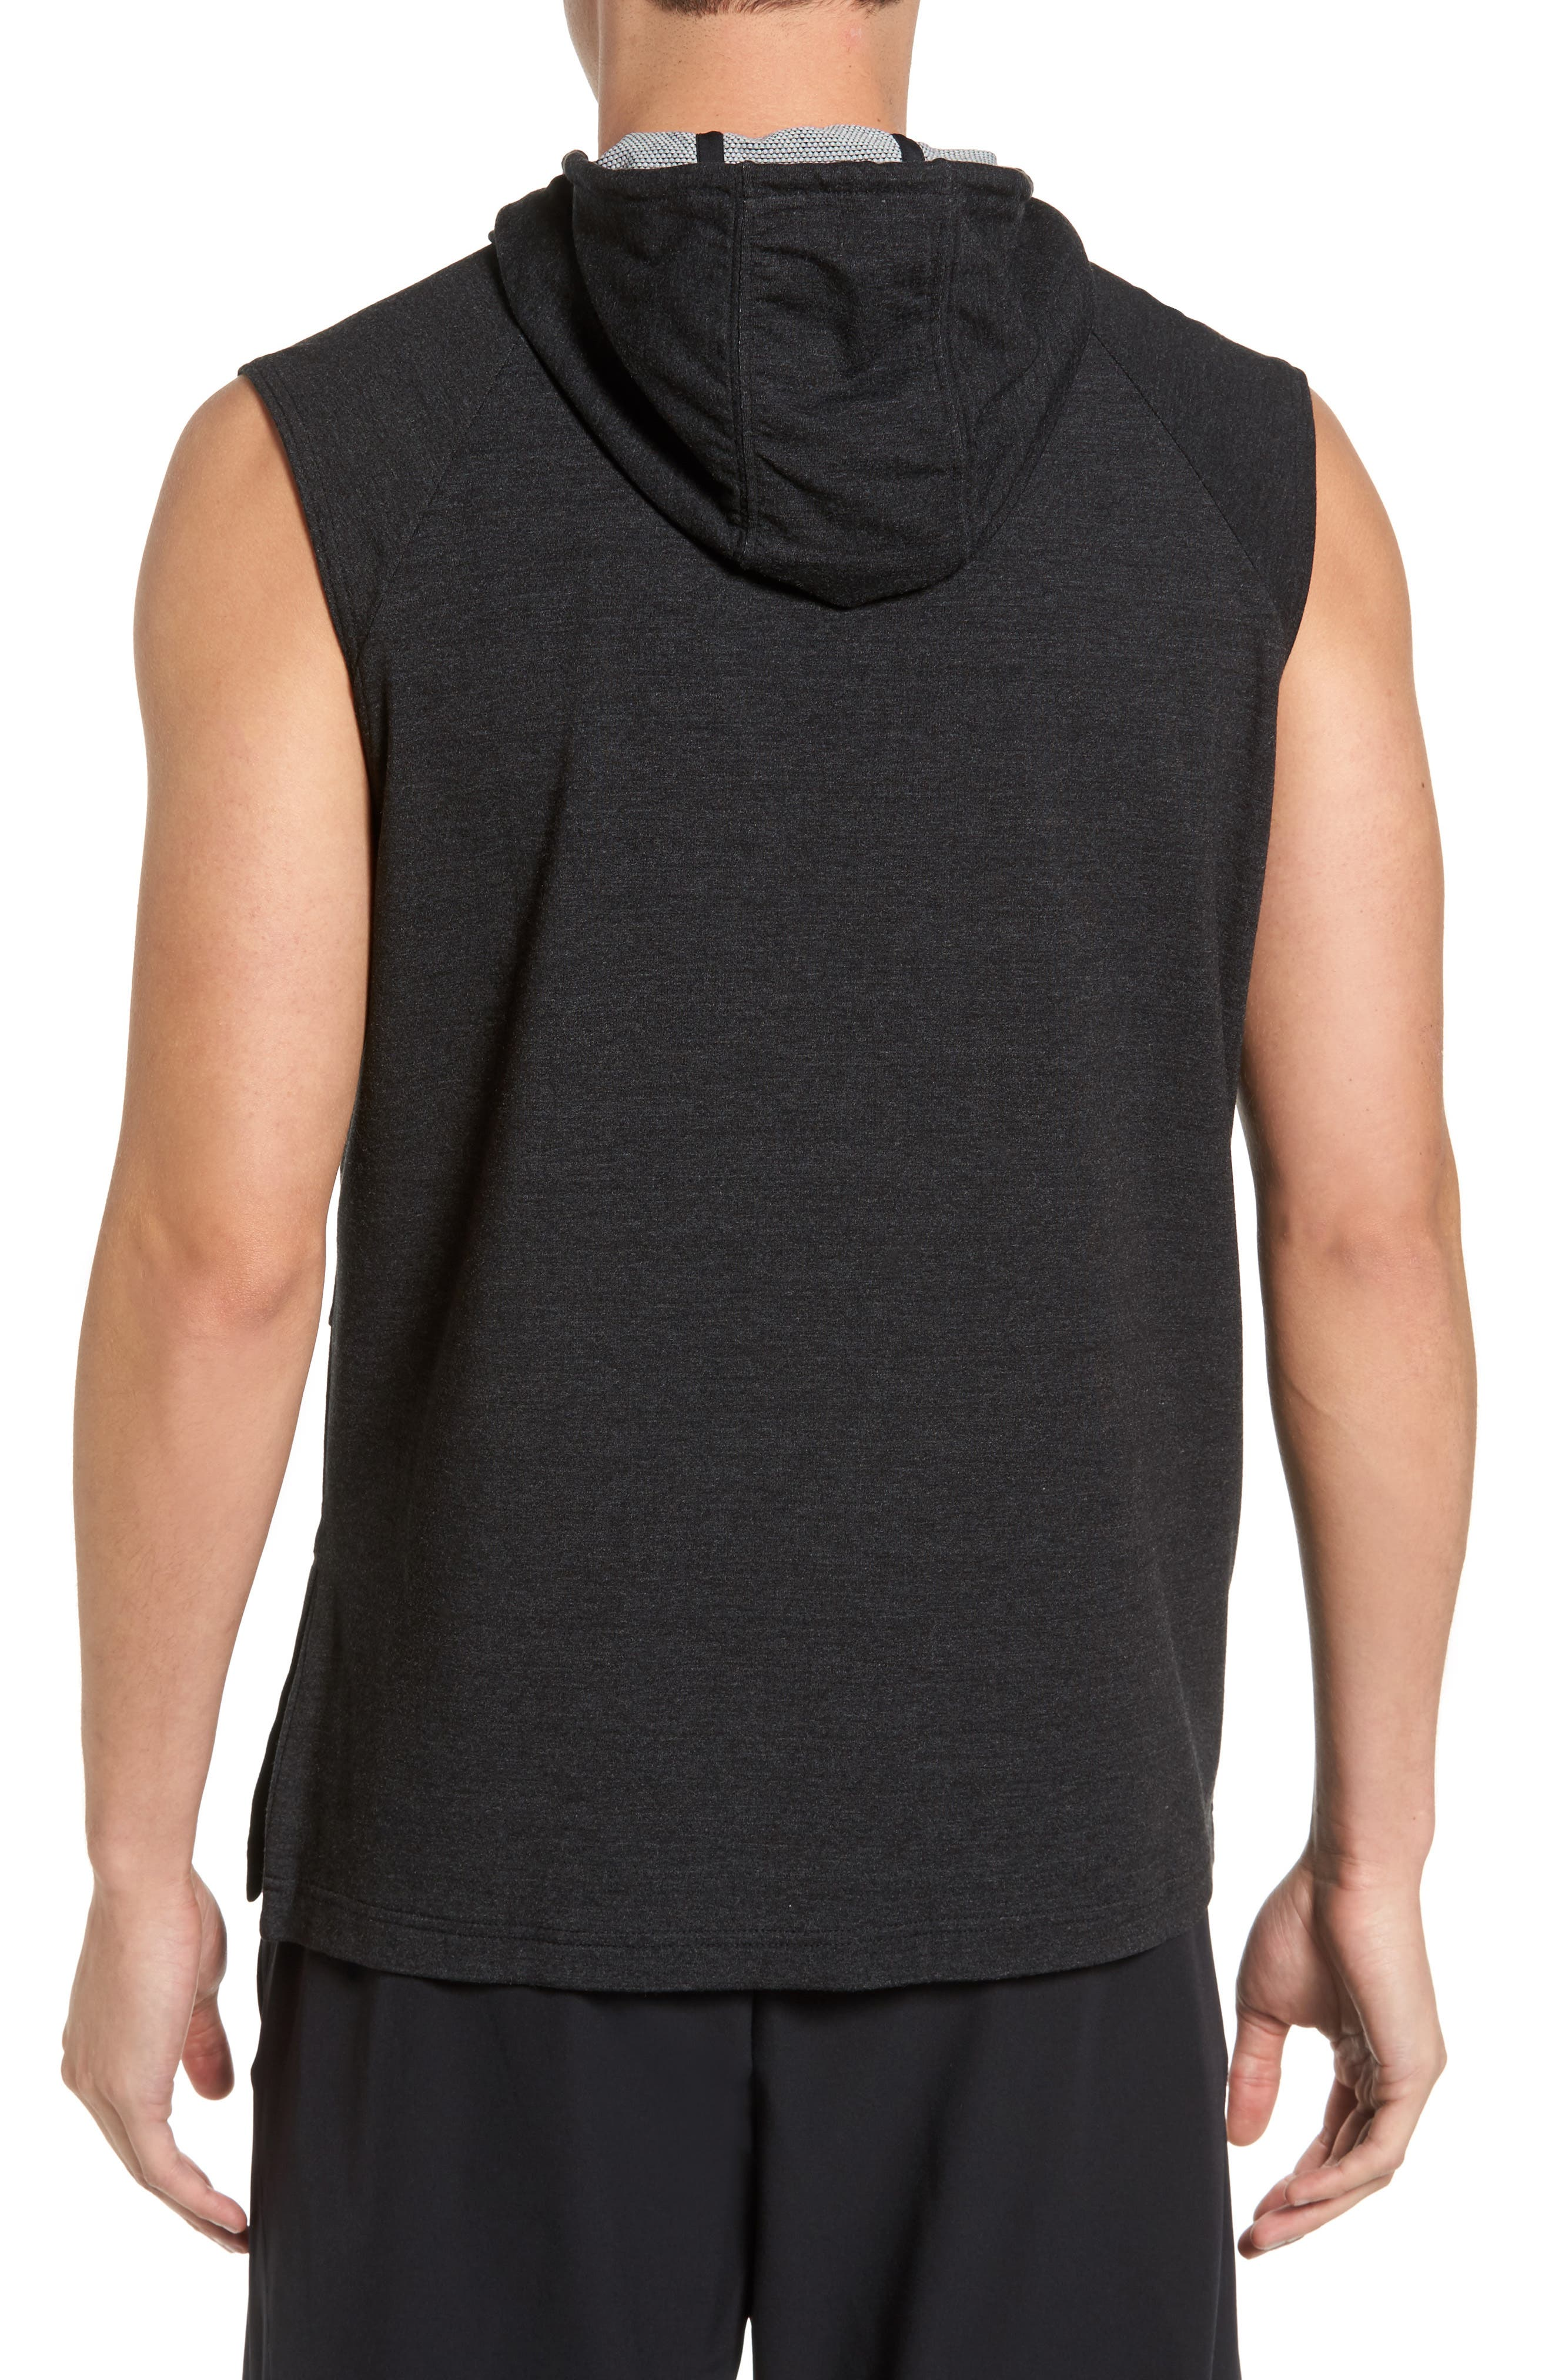 23 Tech Sphere Sleeveless Training Hoodie,                             Alternate thumbnail 2, color,                             010